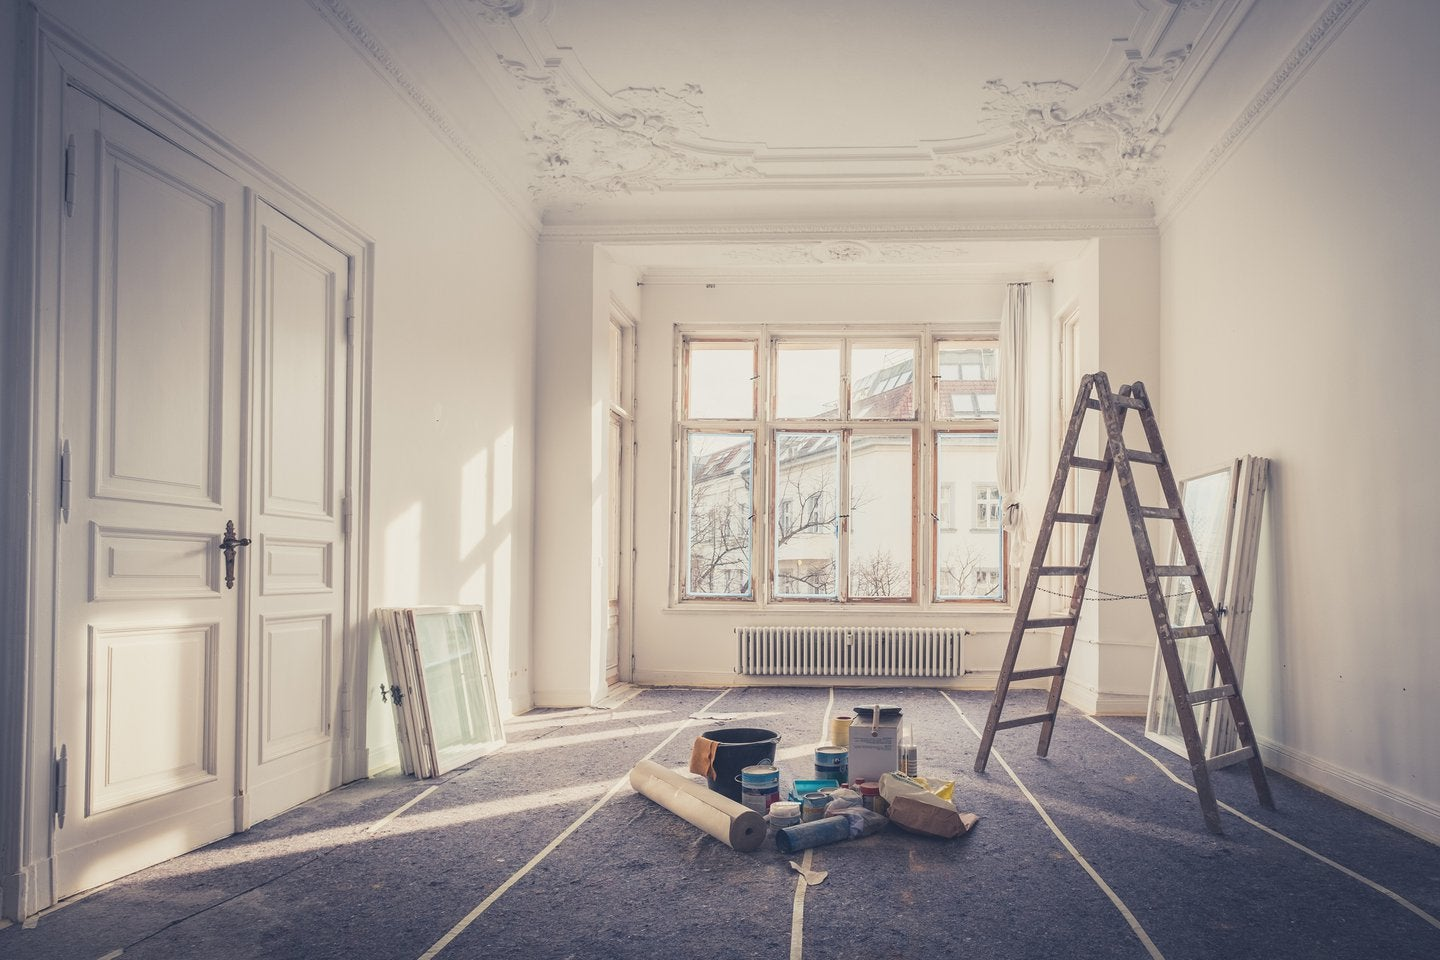 Mission Renovation Contractor